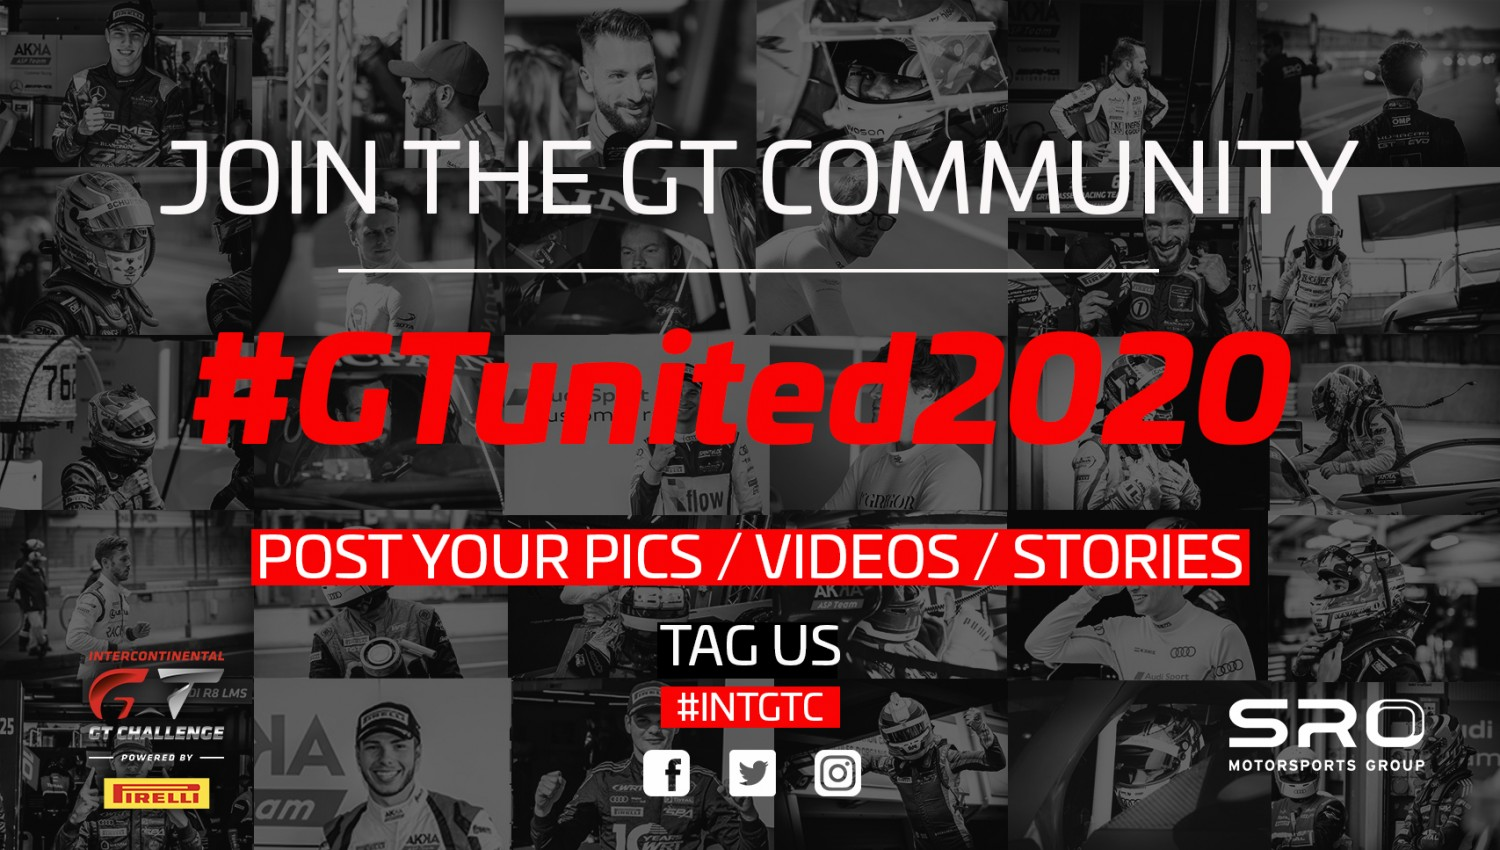 Join the conversation using #GTunited2020